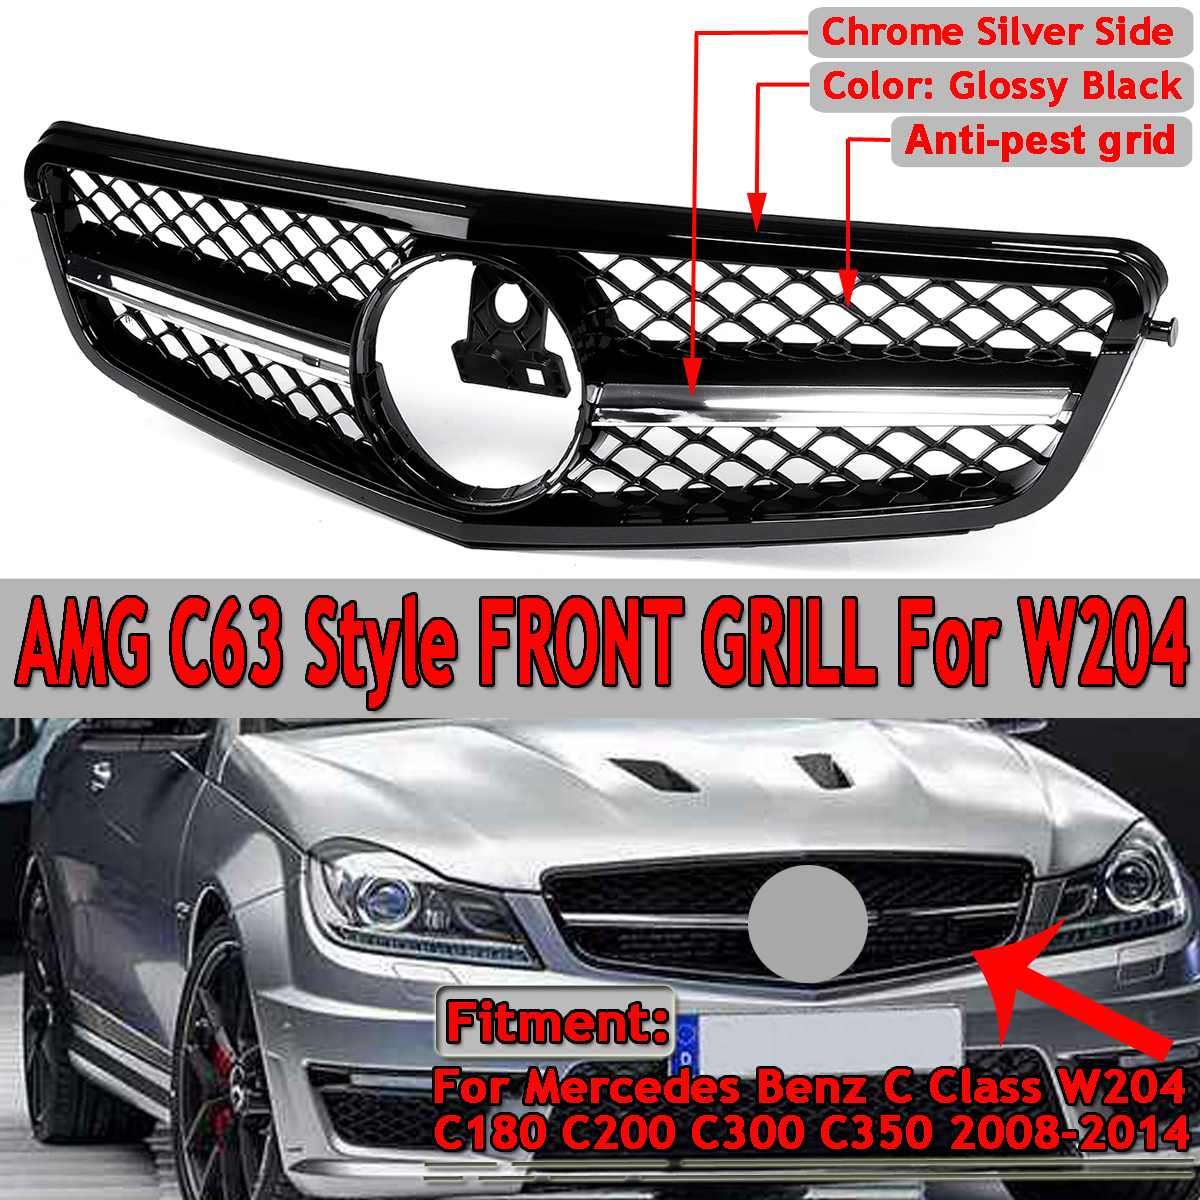 For AMG C63 Style New Car Front Upper Grille <font><b>Grill</b></font> For Mercedes For <font><b>Benz</b></font> C Class <font><b>W204</b></font> C180 C200 C300 C350 2008-14 Racing Grille image